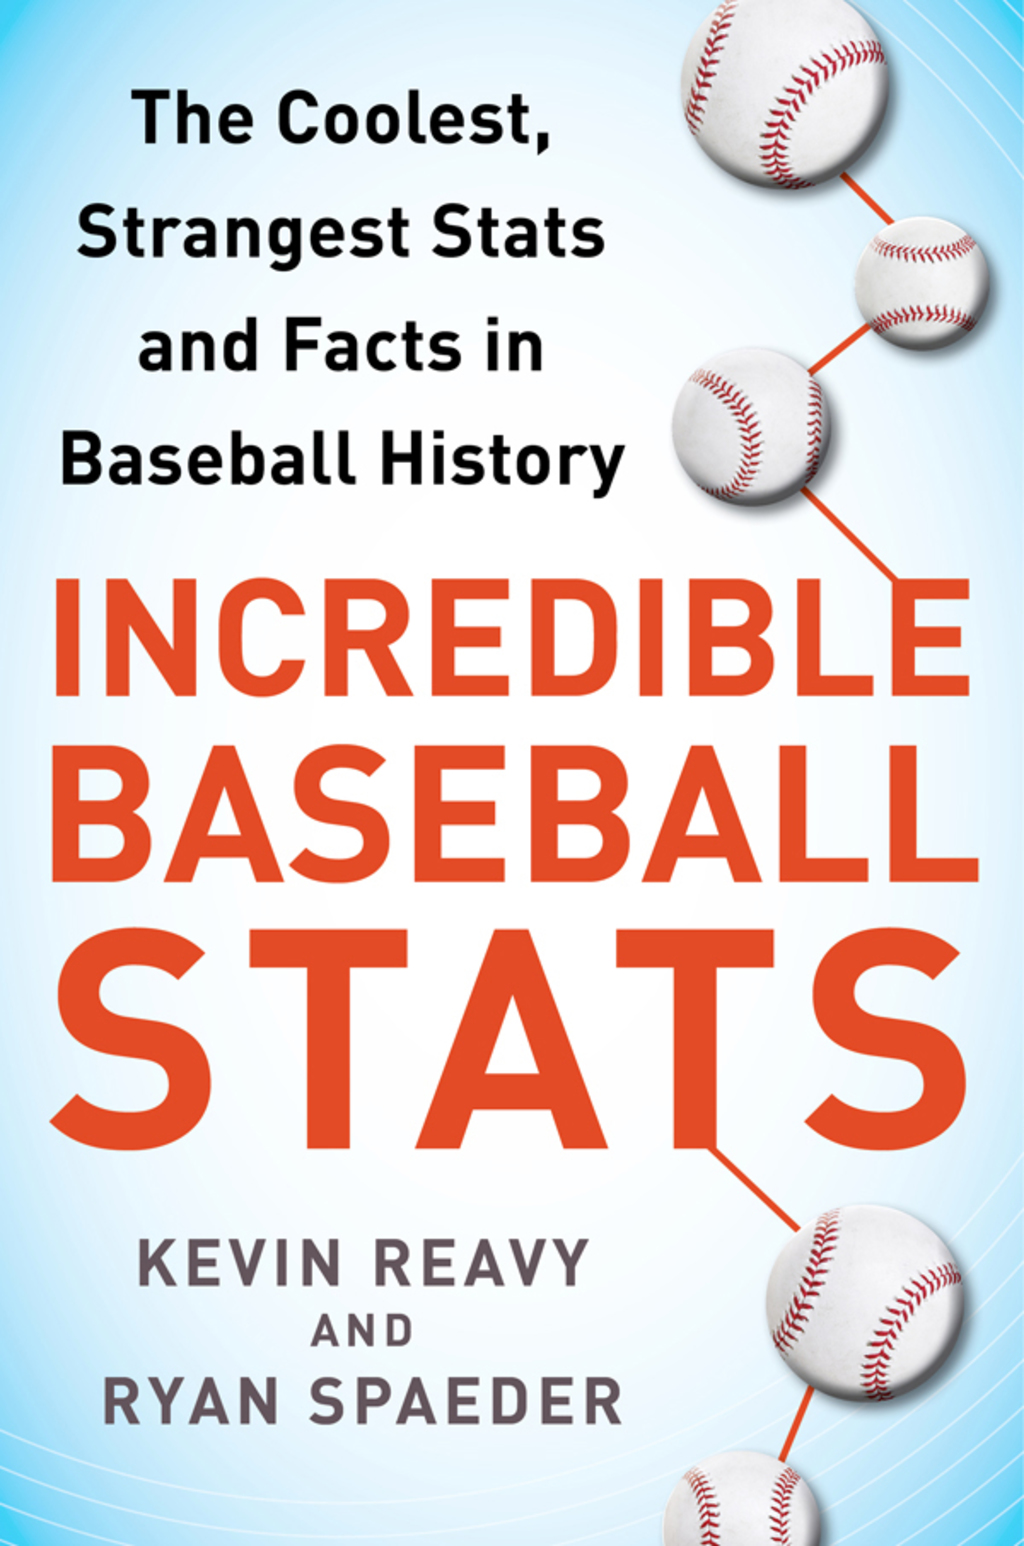 By Kevin Reavy PRINTISBN: 9781613218945 E-TEXT ISBN: 9781613218952 Edition: 0